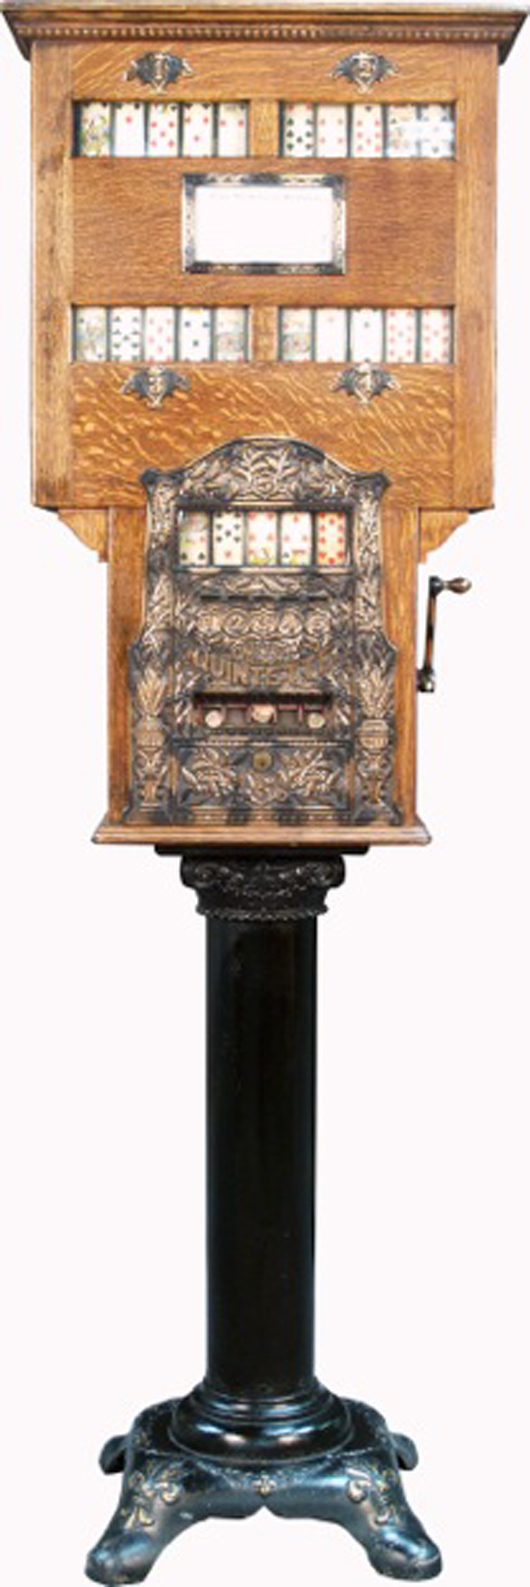 One-cent and five-cent Caille's Quintette, five sets of card reels slot machine, circa 1901, in great condition. Estimate: $16,000-$100,000. Image courtesy of Victorian Casino Antiques.